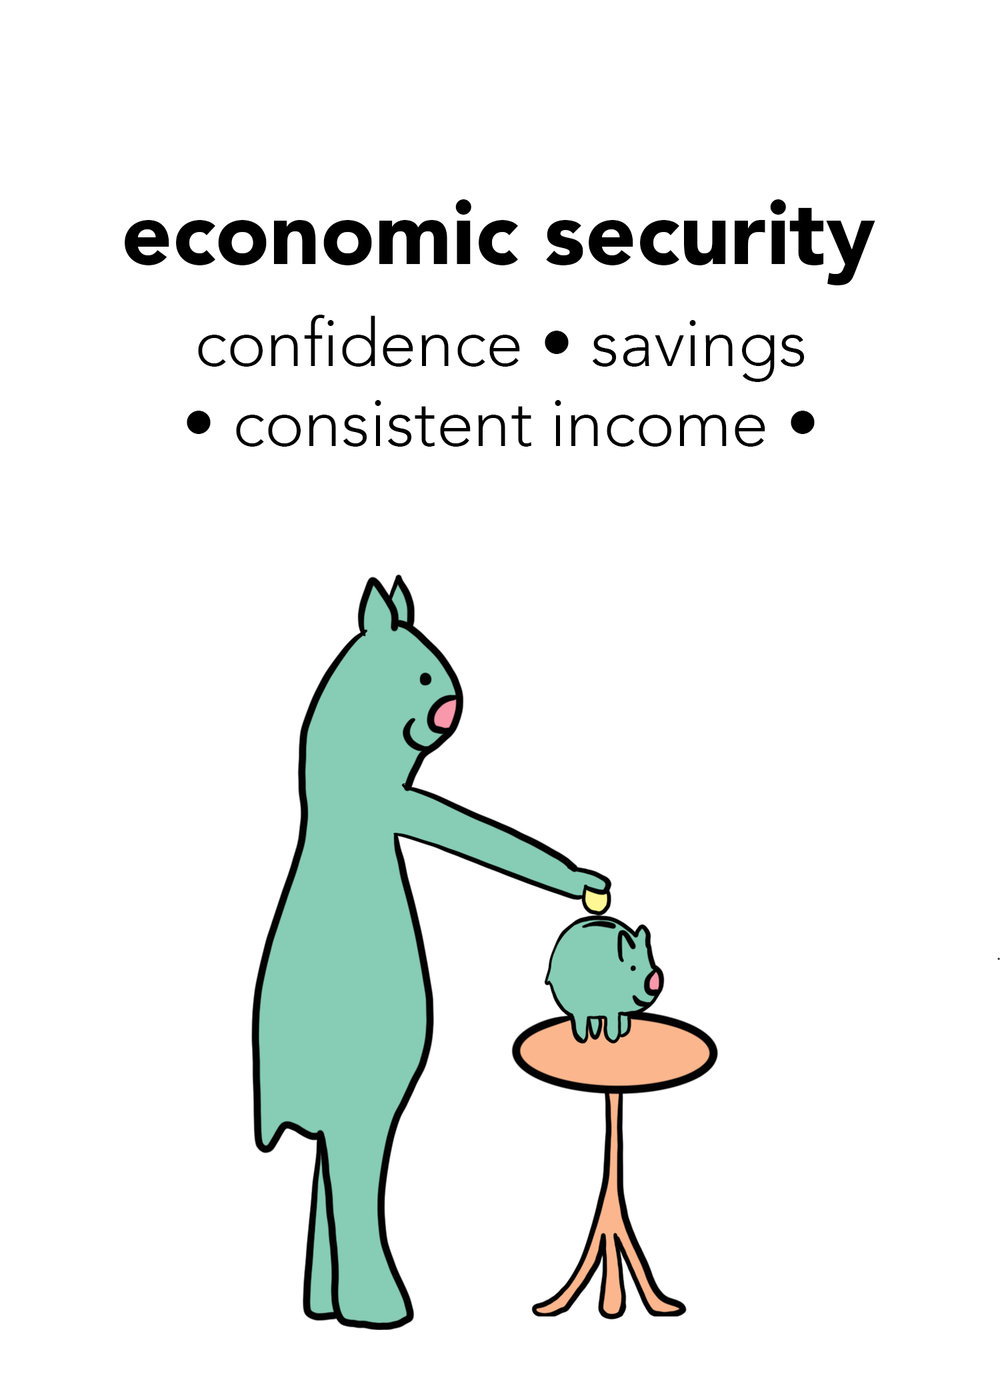 economicsecurity.jpg